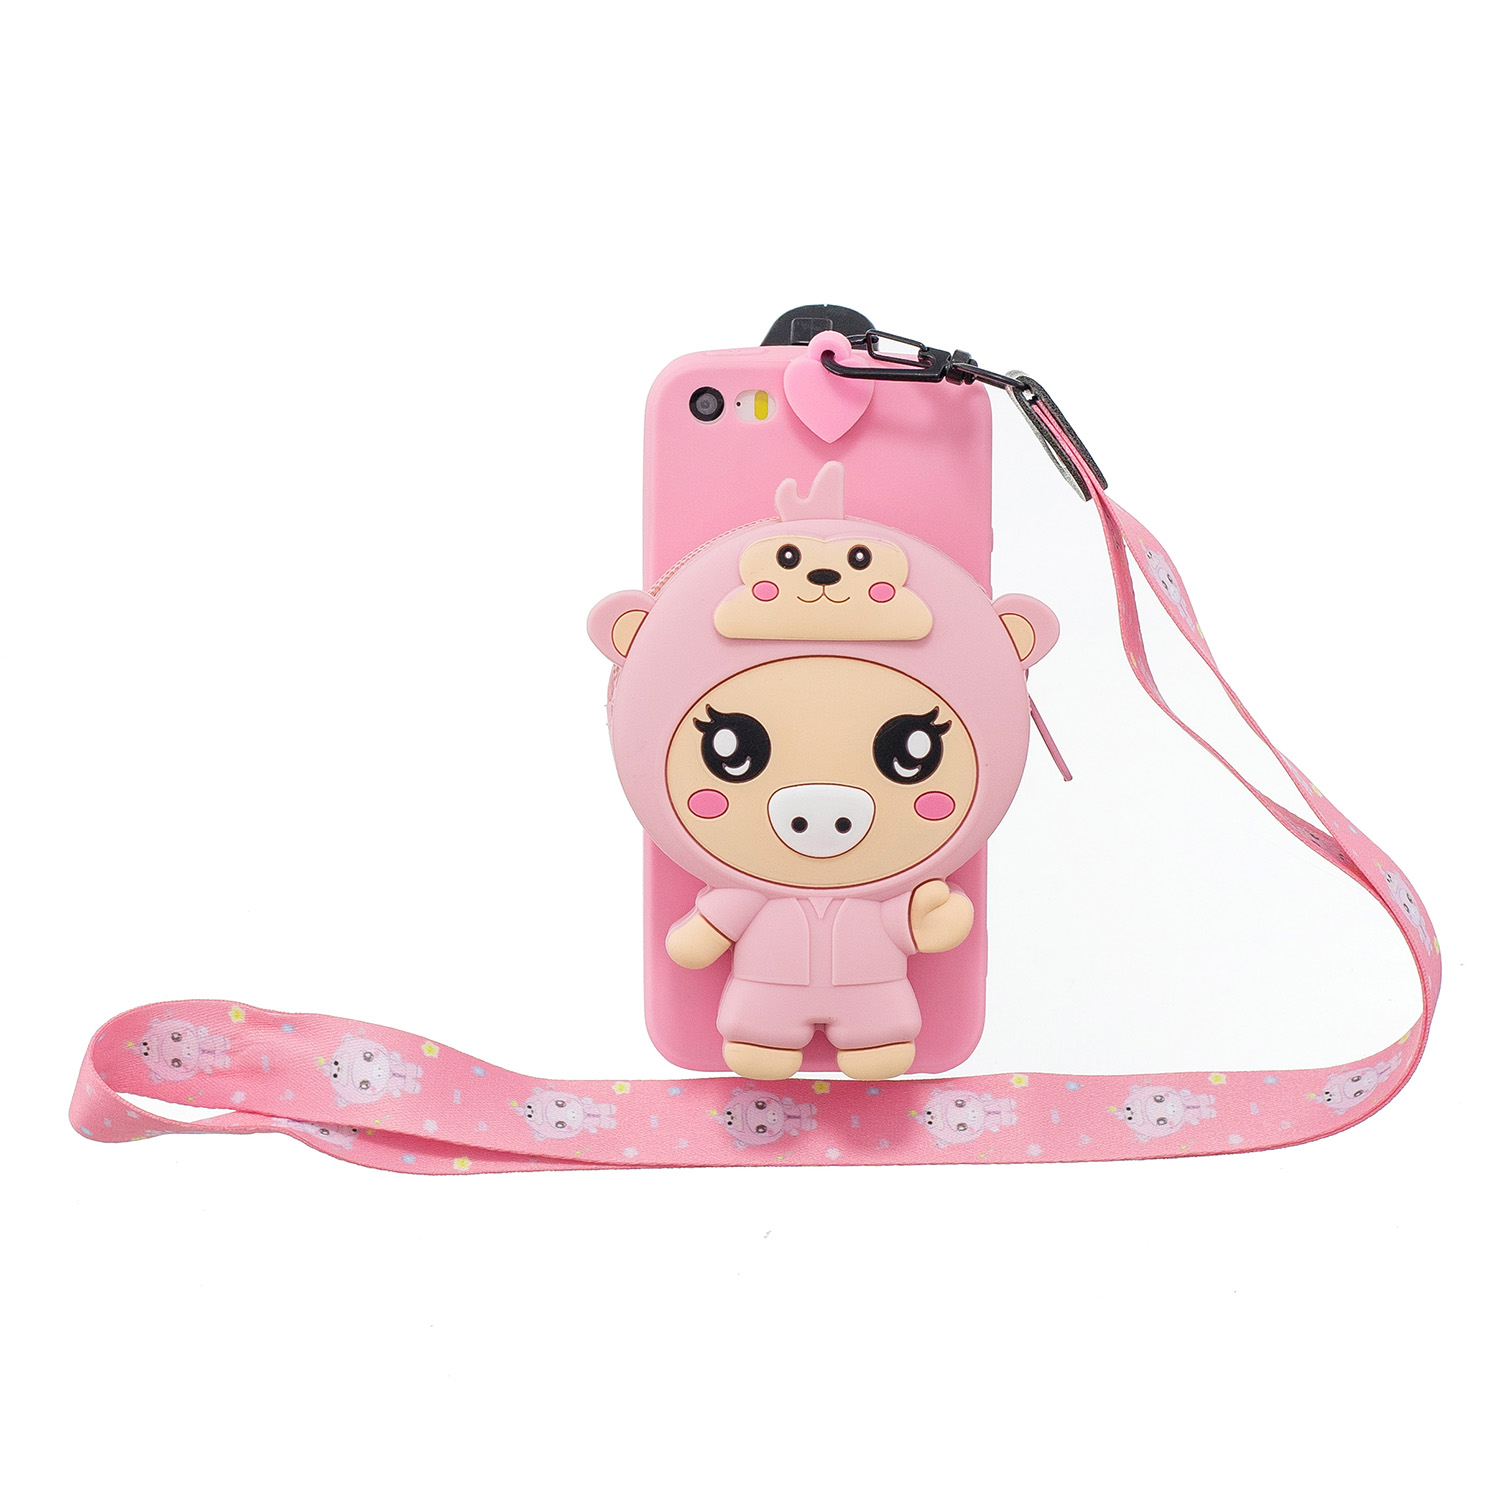 For Iphone 5 / 5S / SE Cartoon Hanging Lanyard + Fall Resistant Cartoon TPU Full Protective Mobile Phone Cover with Coin Purse 3 deep pink piglets